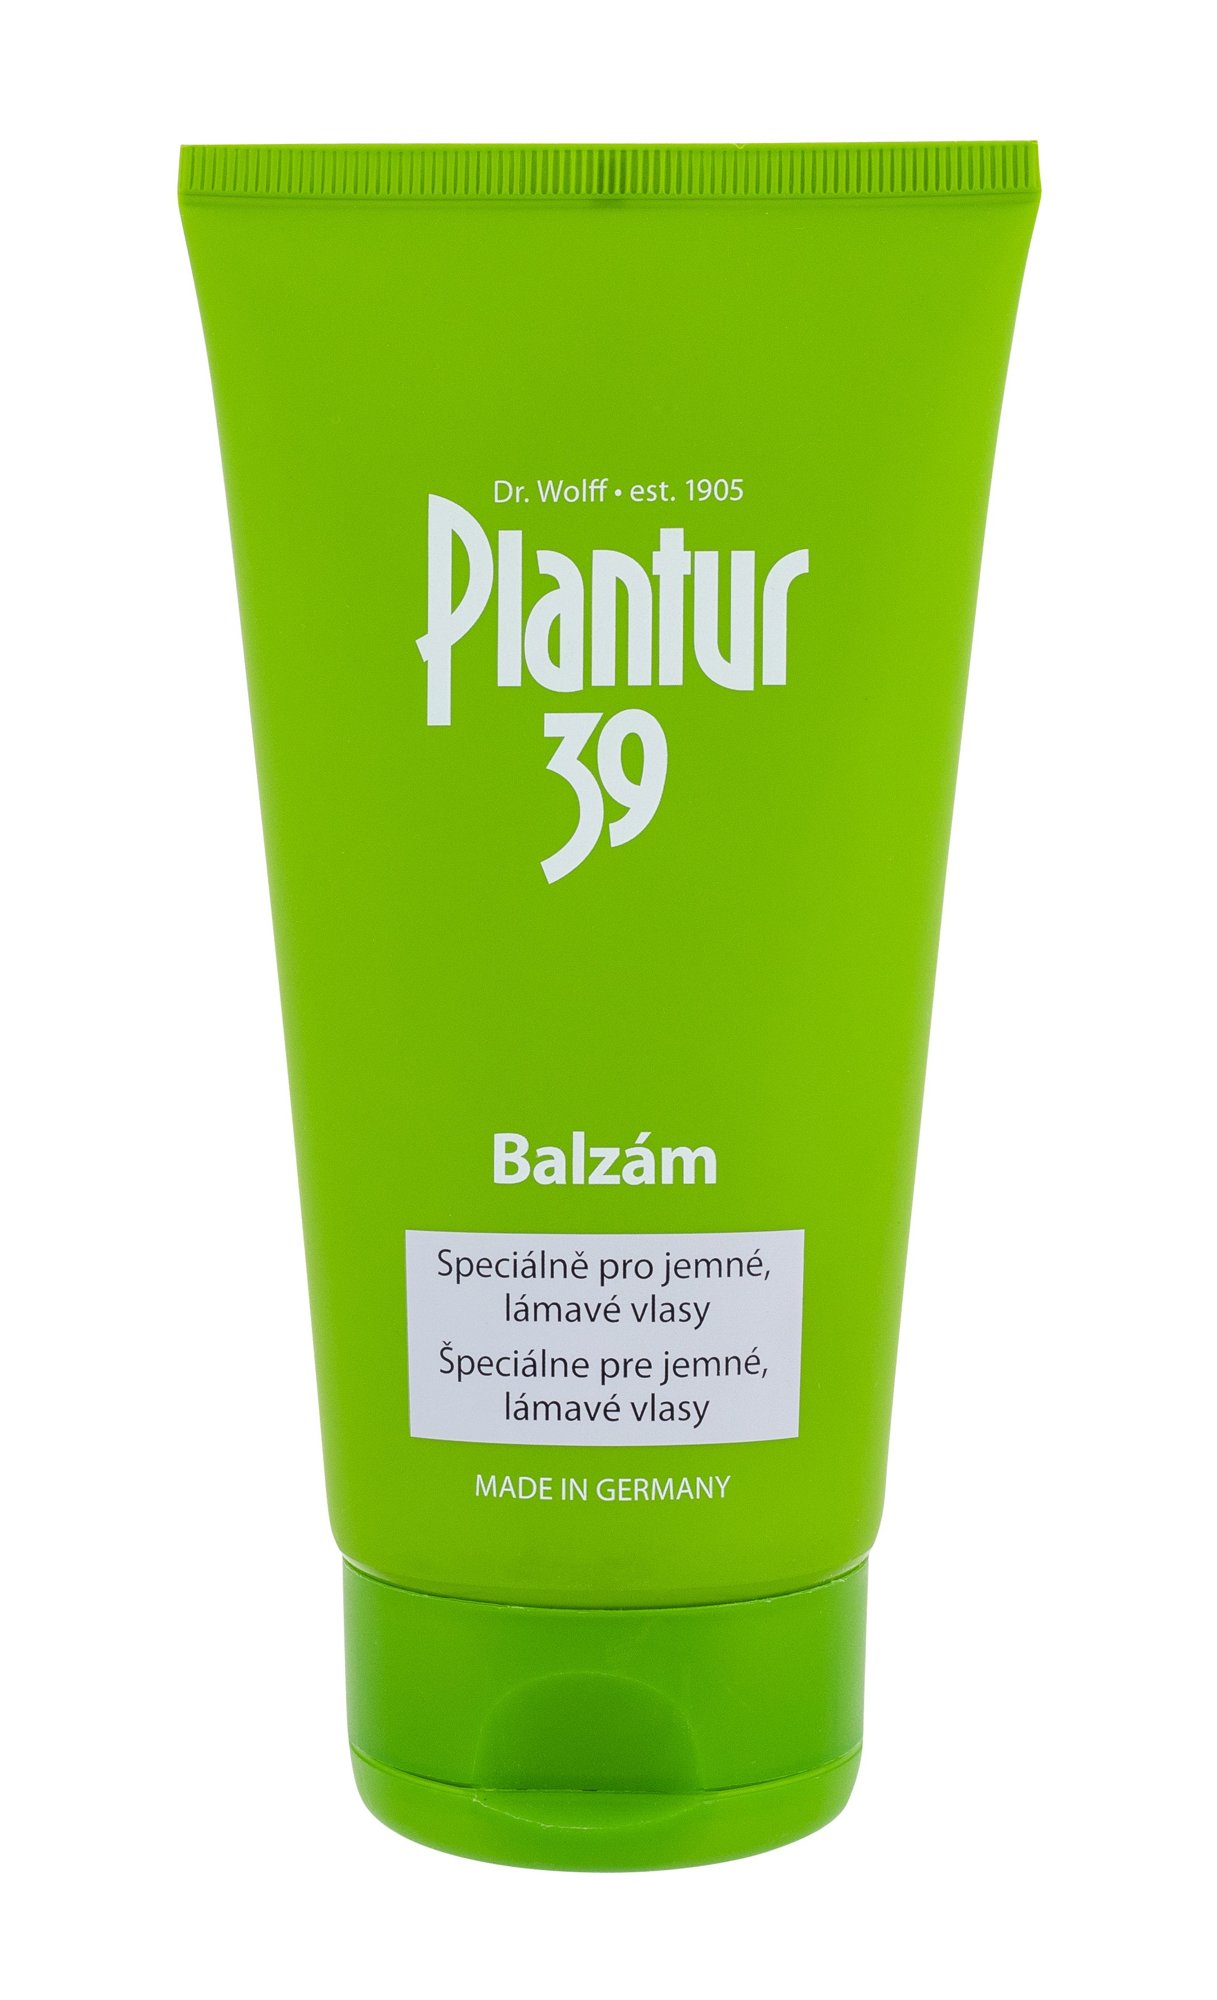 Plantur 39 Phyto-Coffein Cosmetic 150ml